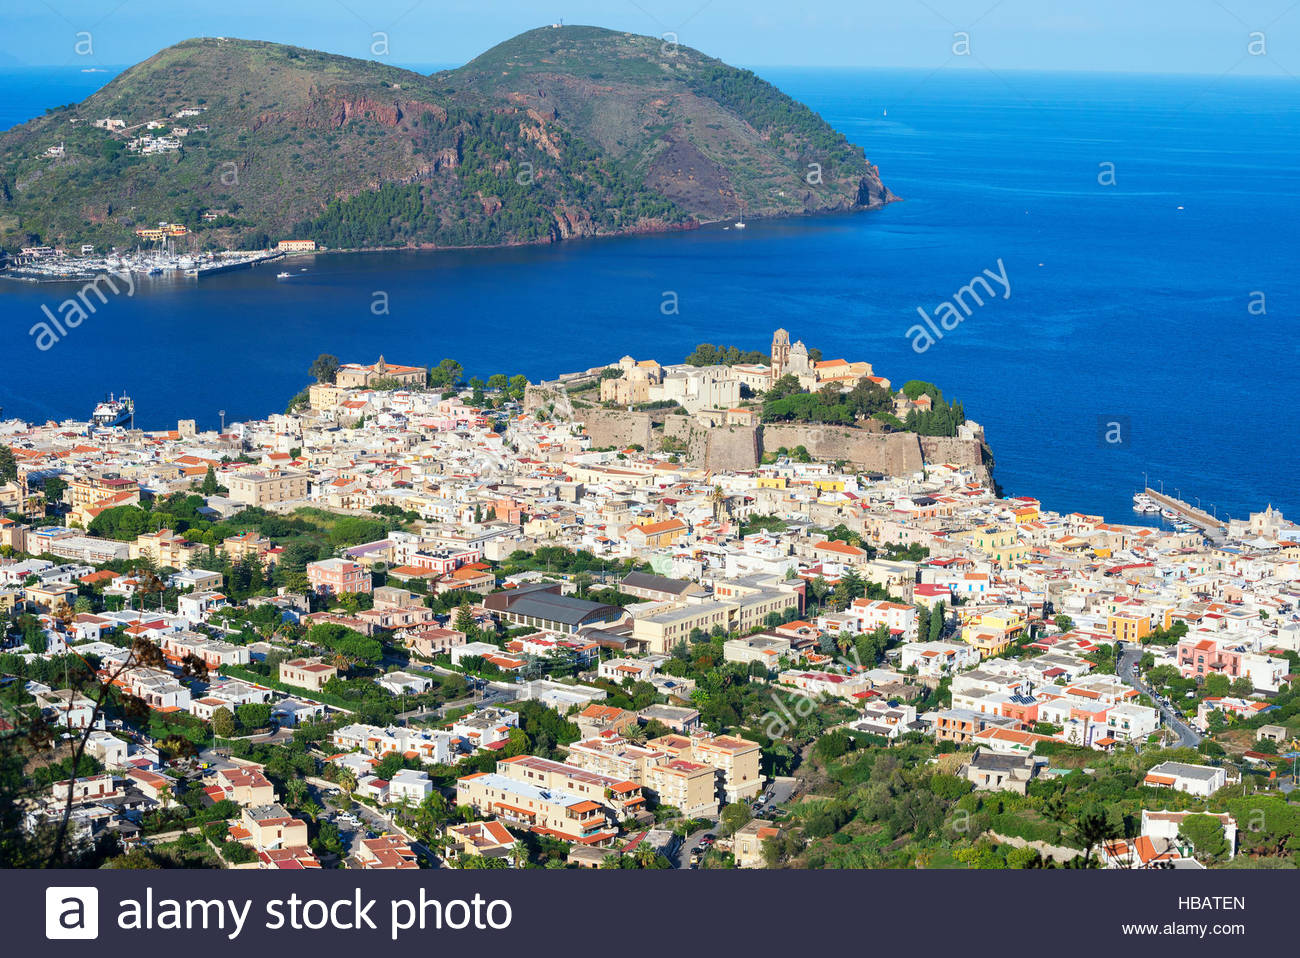 View of Lipari Town, Sicily, Italy - Stock Image